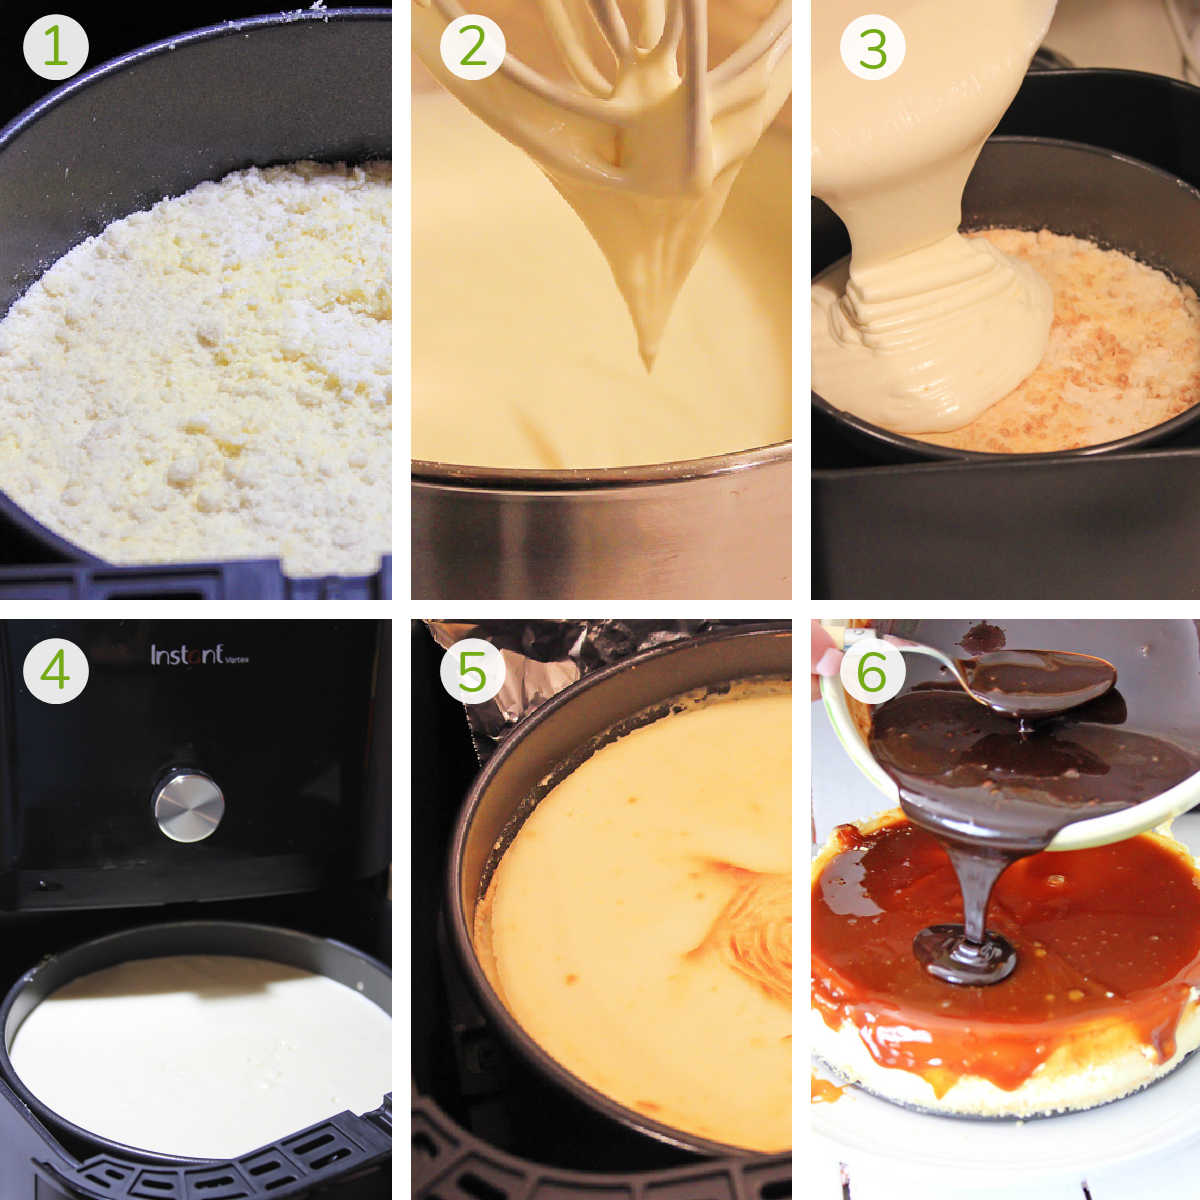 six steps to make a crust, whip the filling, air fry and top the cheesecake with caramel and chocolate